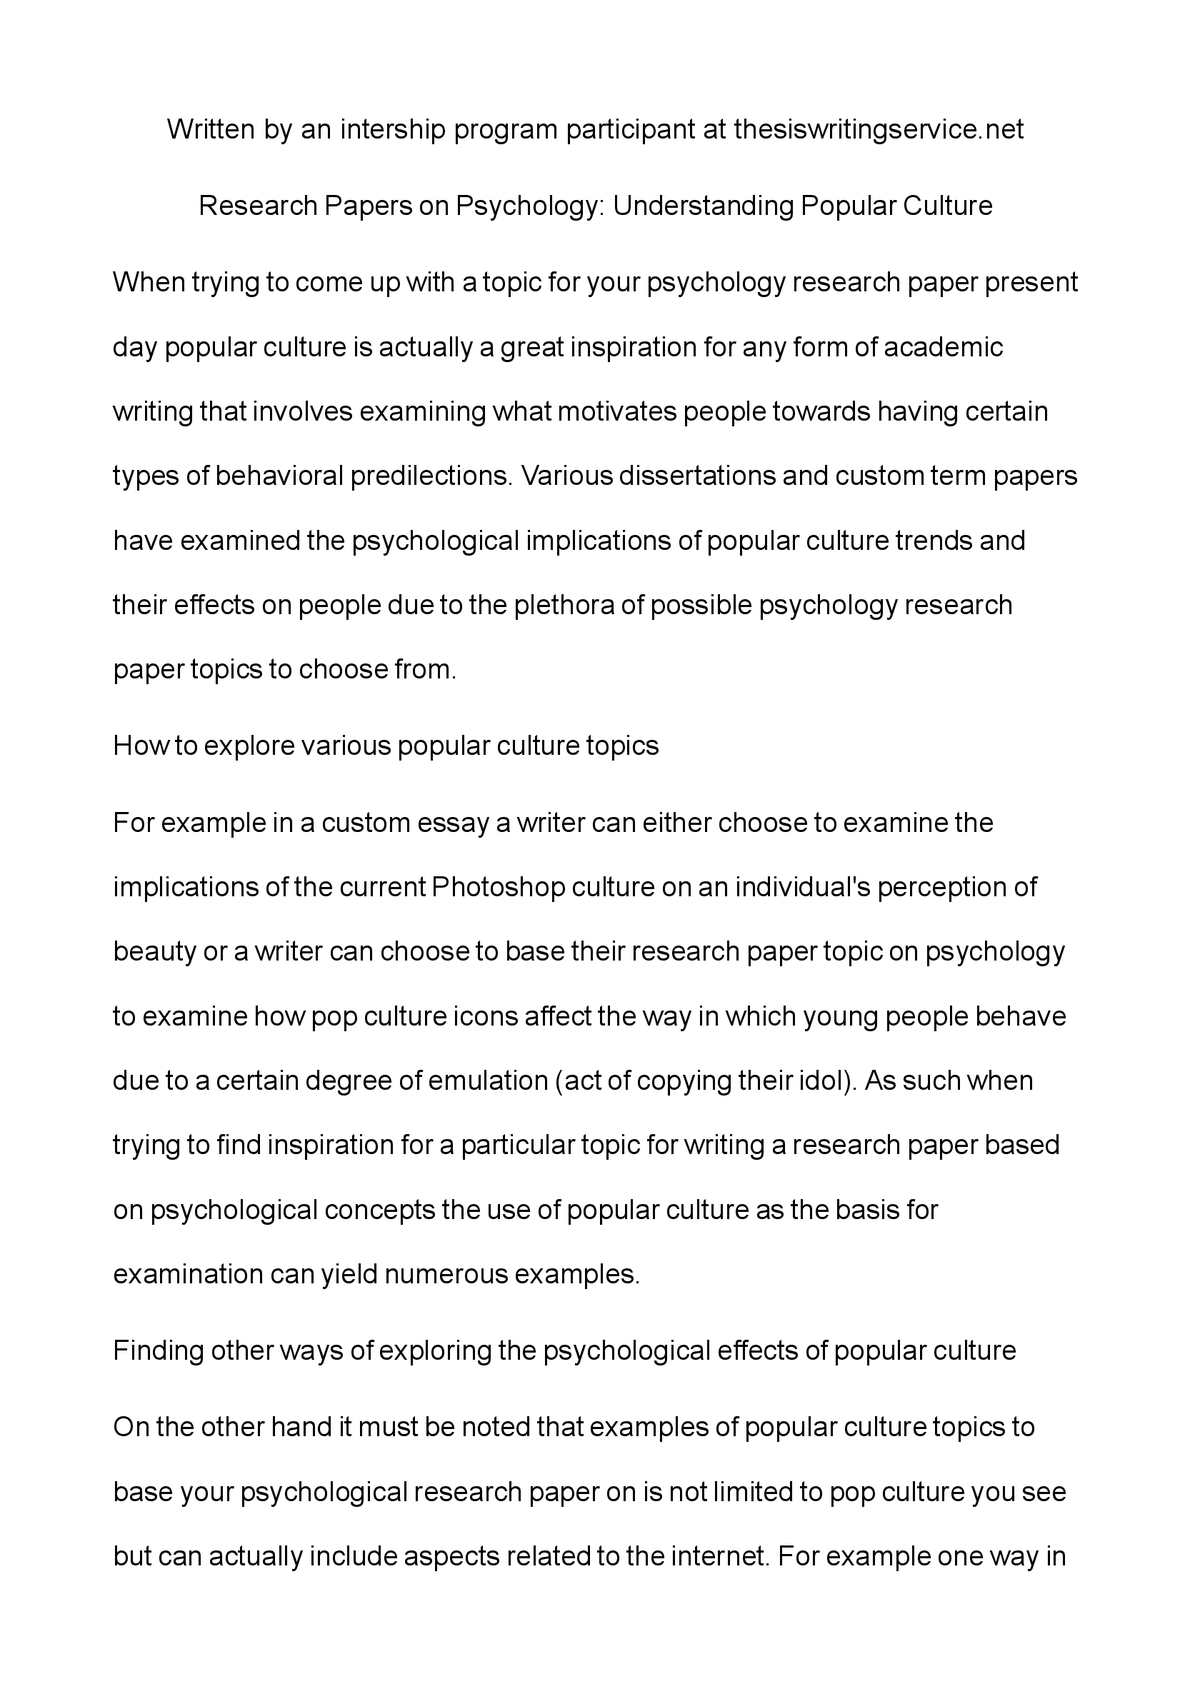 016 Research Papers For Psychology Paper Fascinating Dreams Topics Social Full